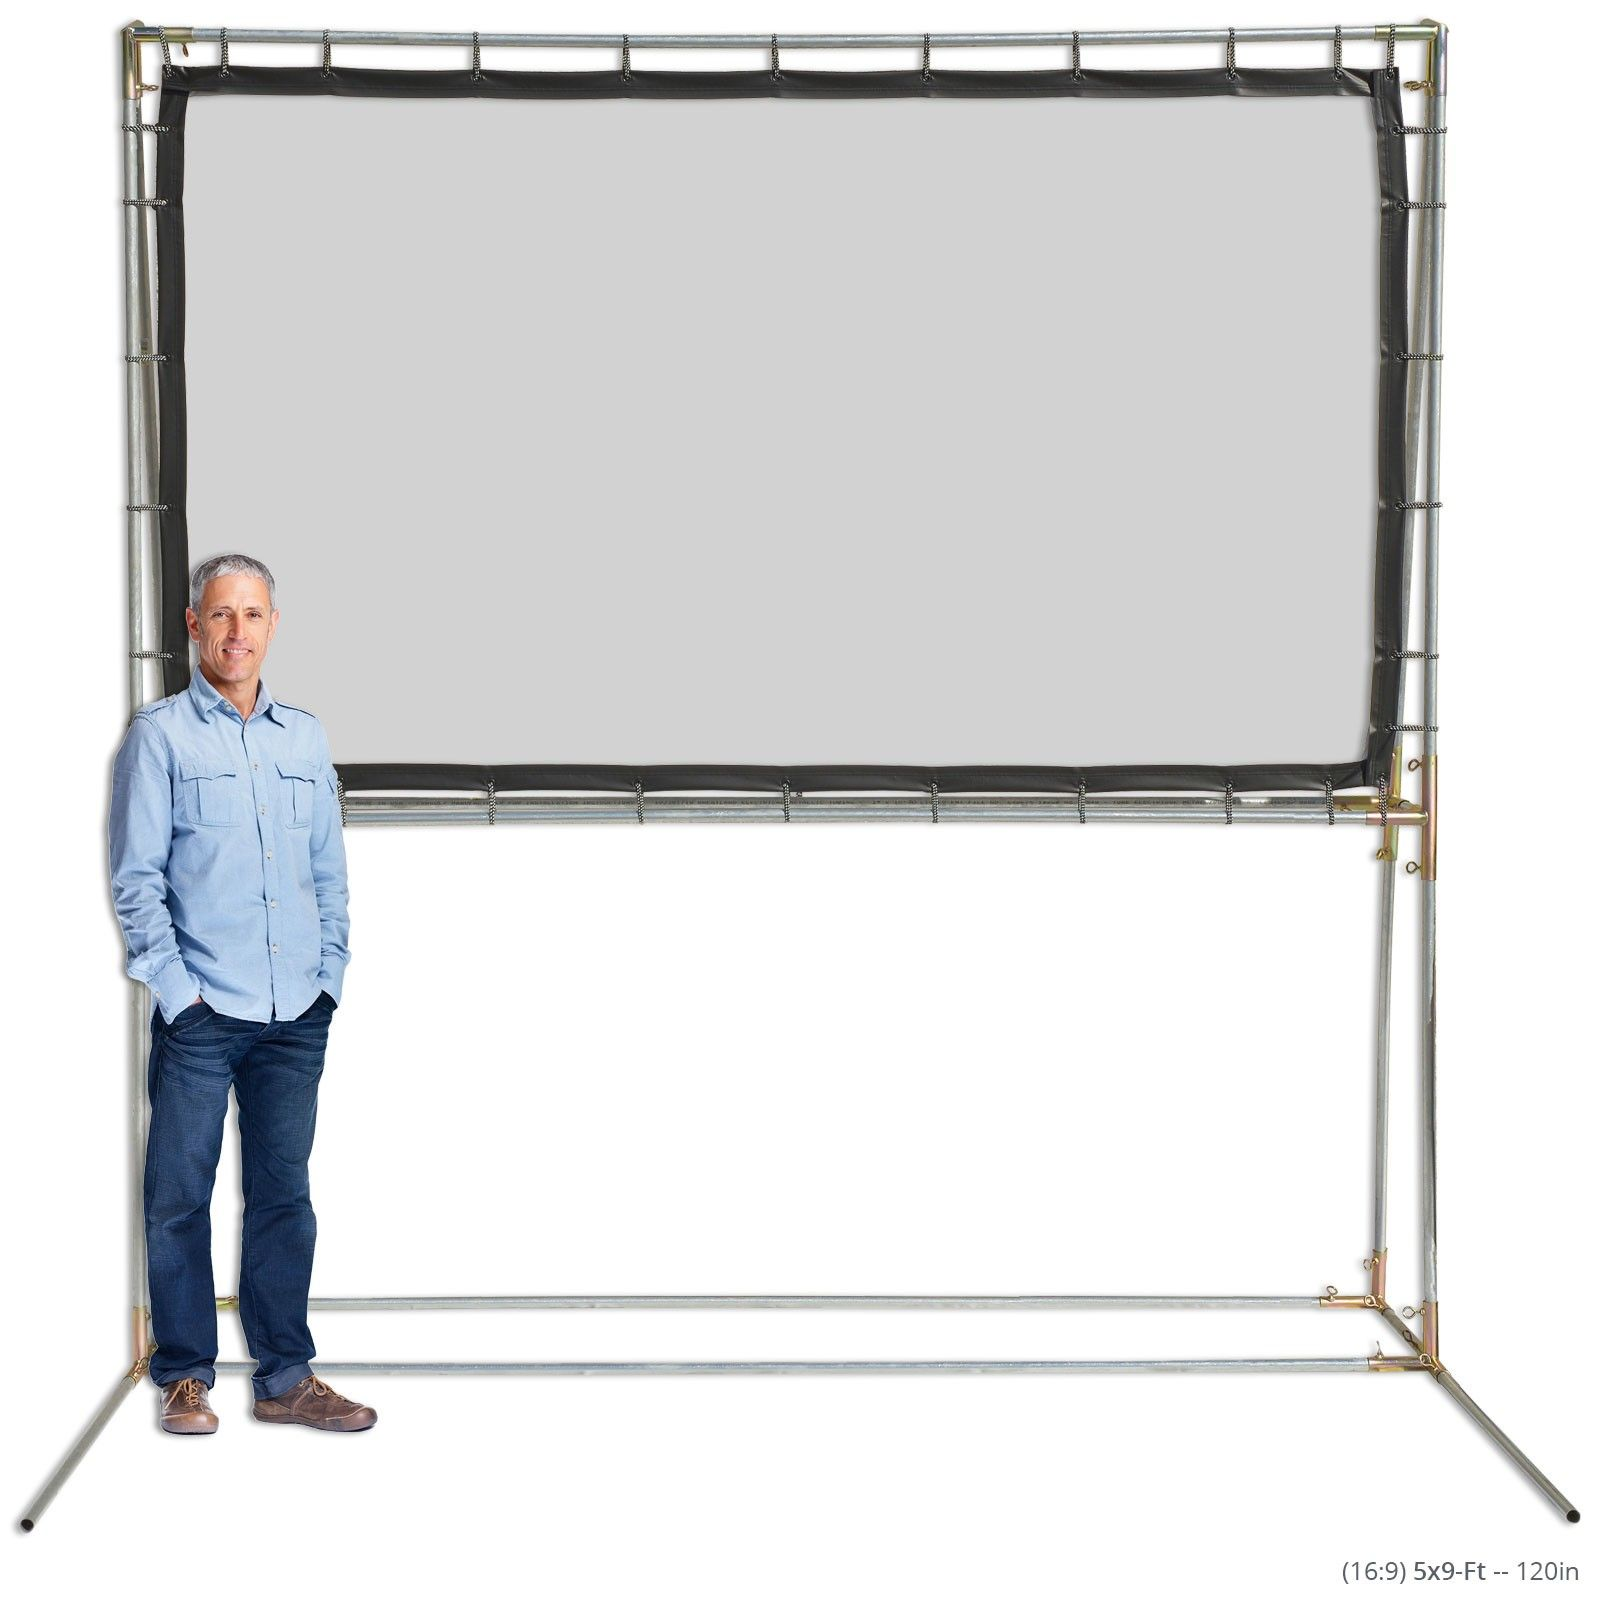 Standing Projection Screen Kits Projector Screen Projector Screen Diy Outdoor Projector